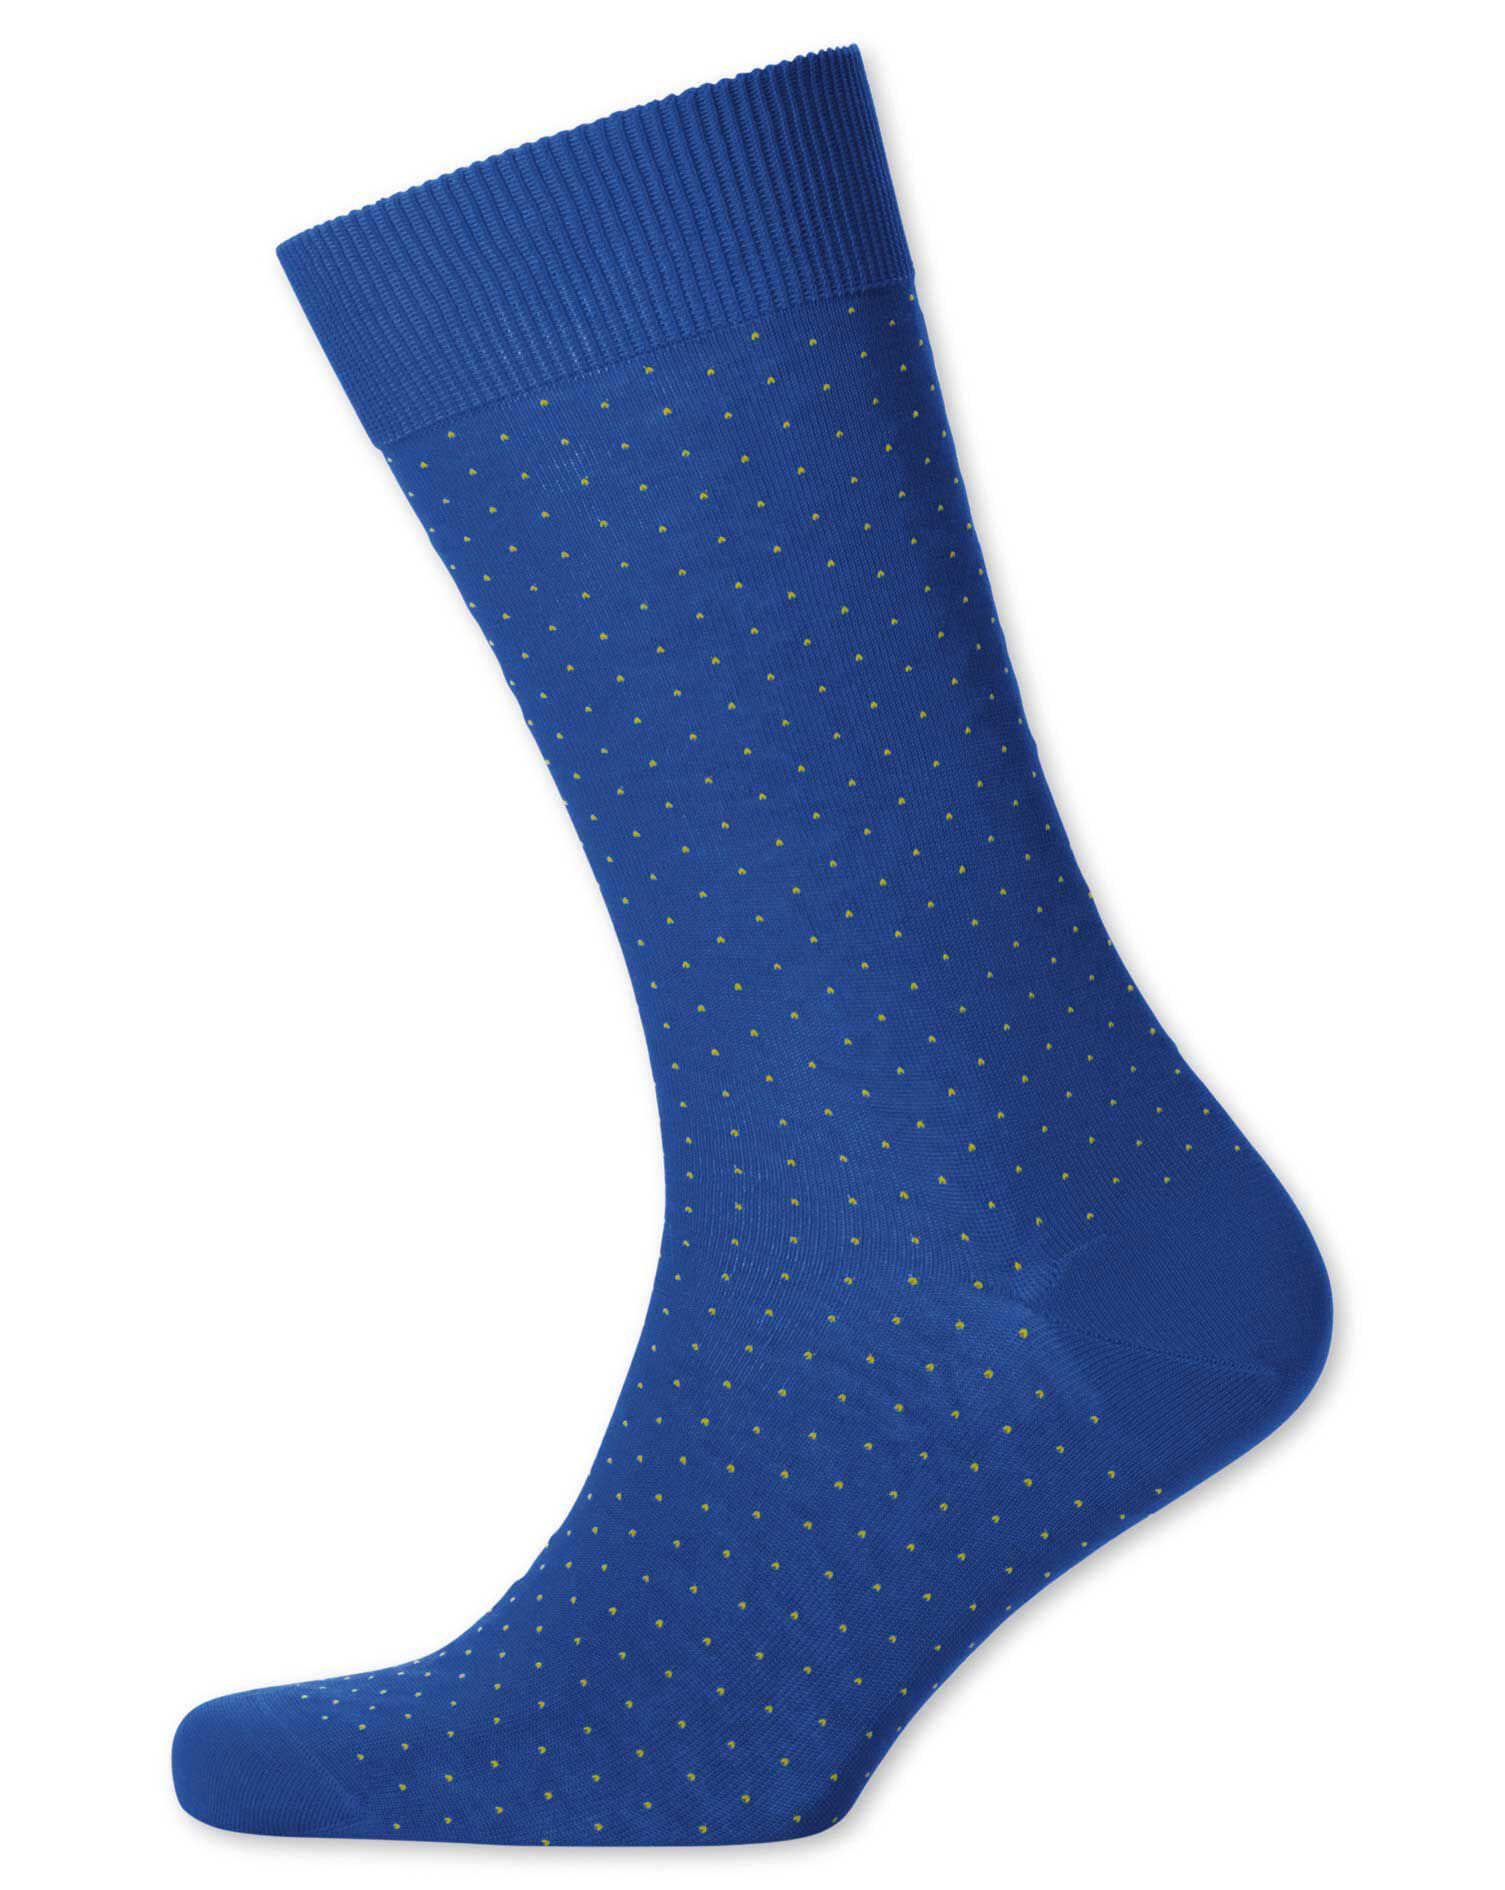 Royal Blue Micro Dash Socks Size Large by Charles Tyrwhitt